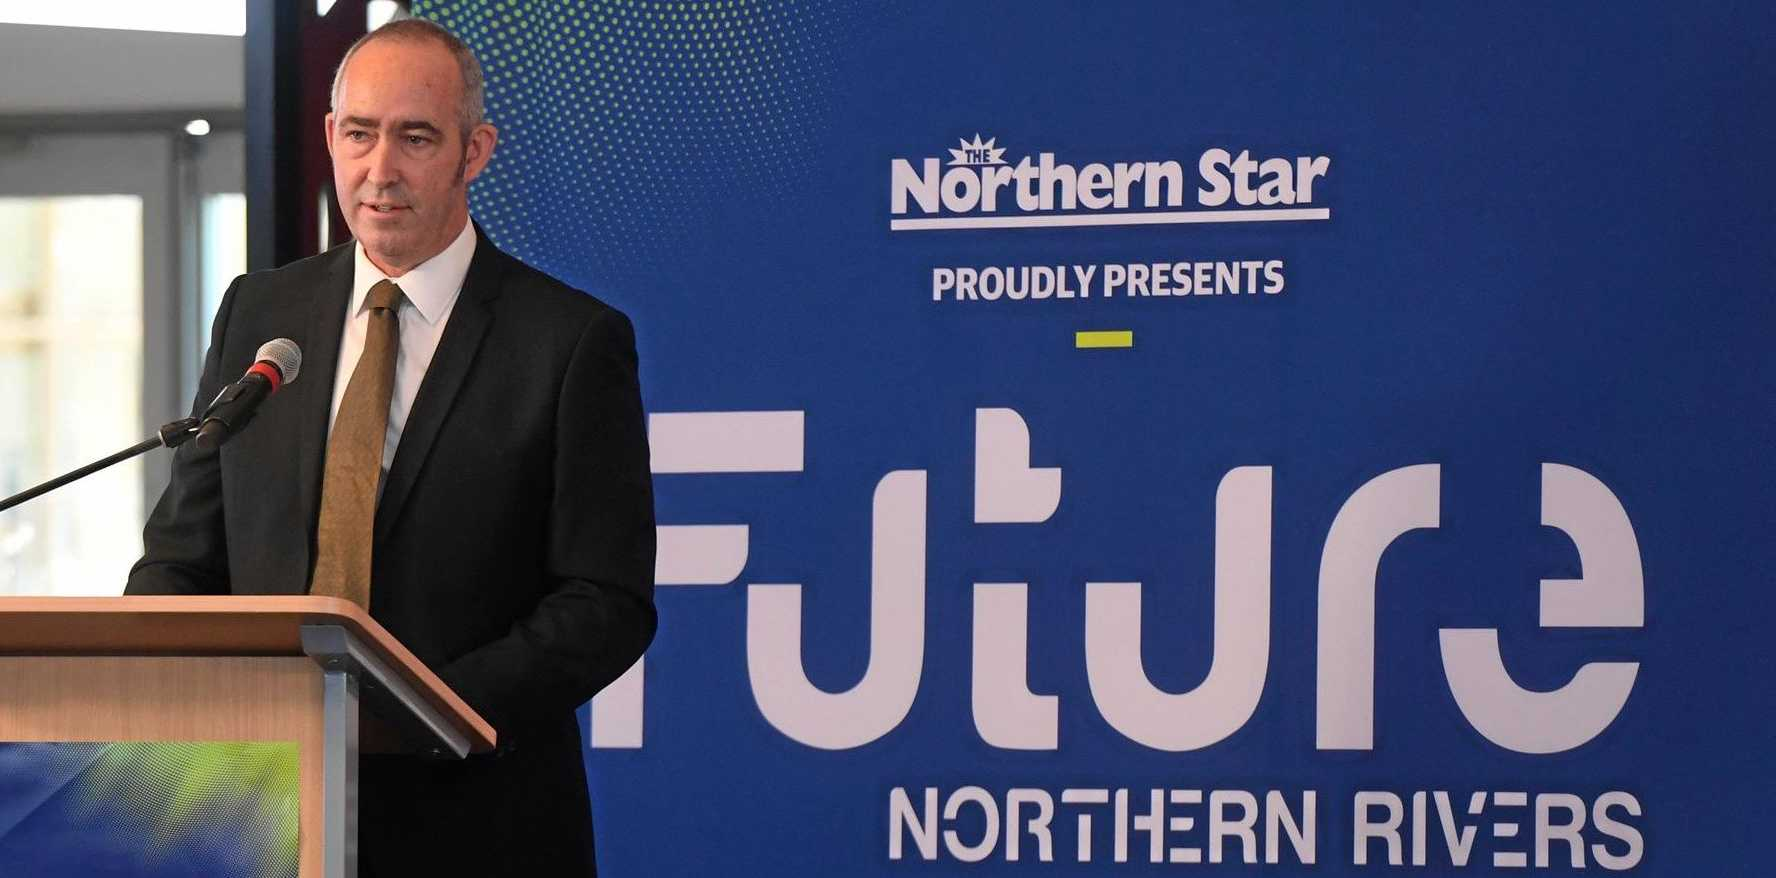 Northern Star editor David Kirkpatrick at the Future Northern Rivers event at SCU.